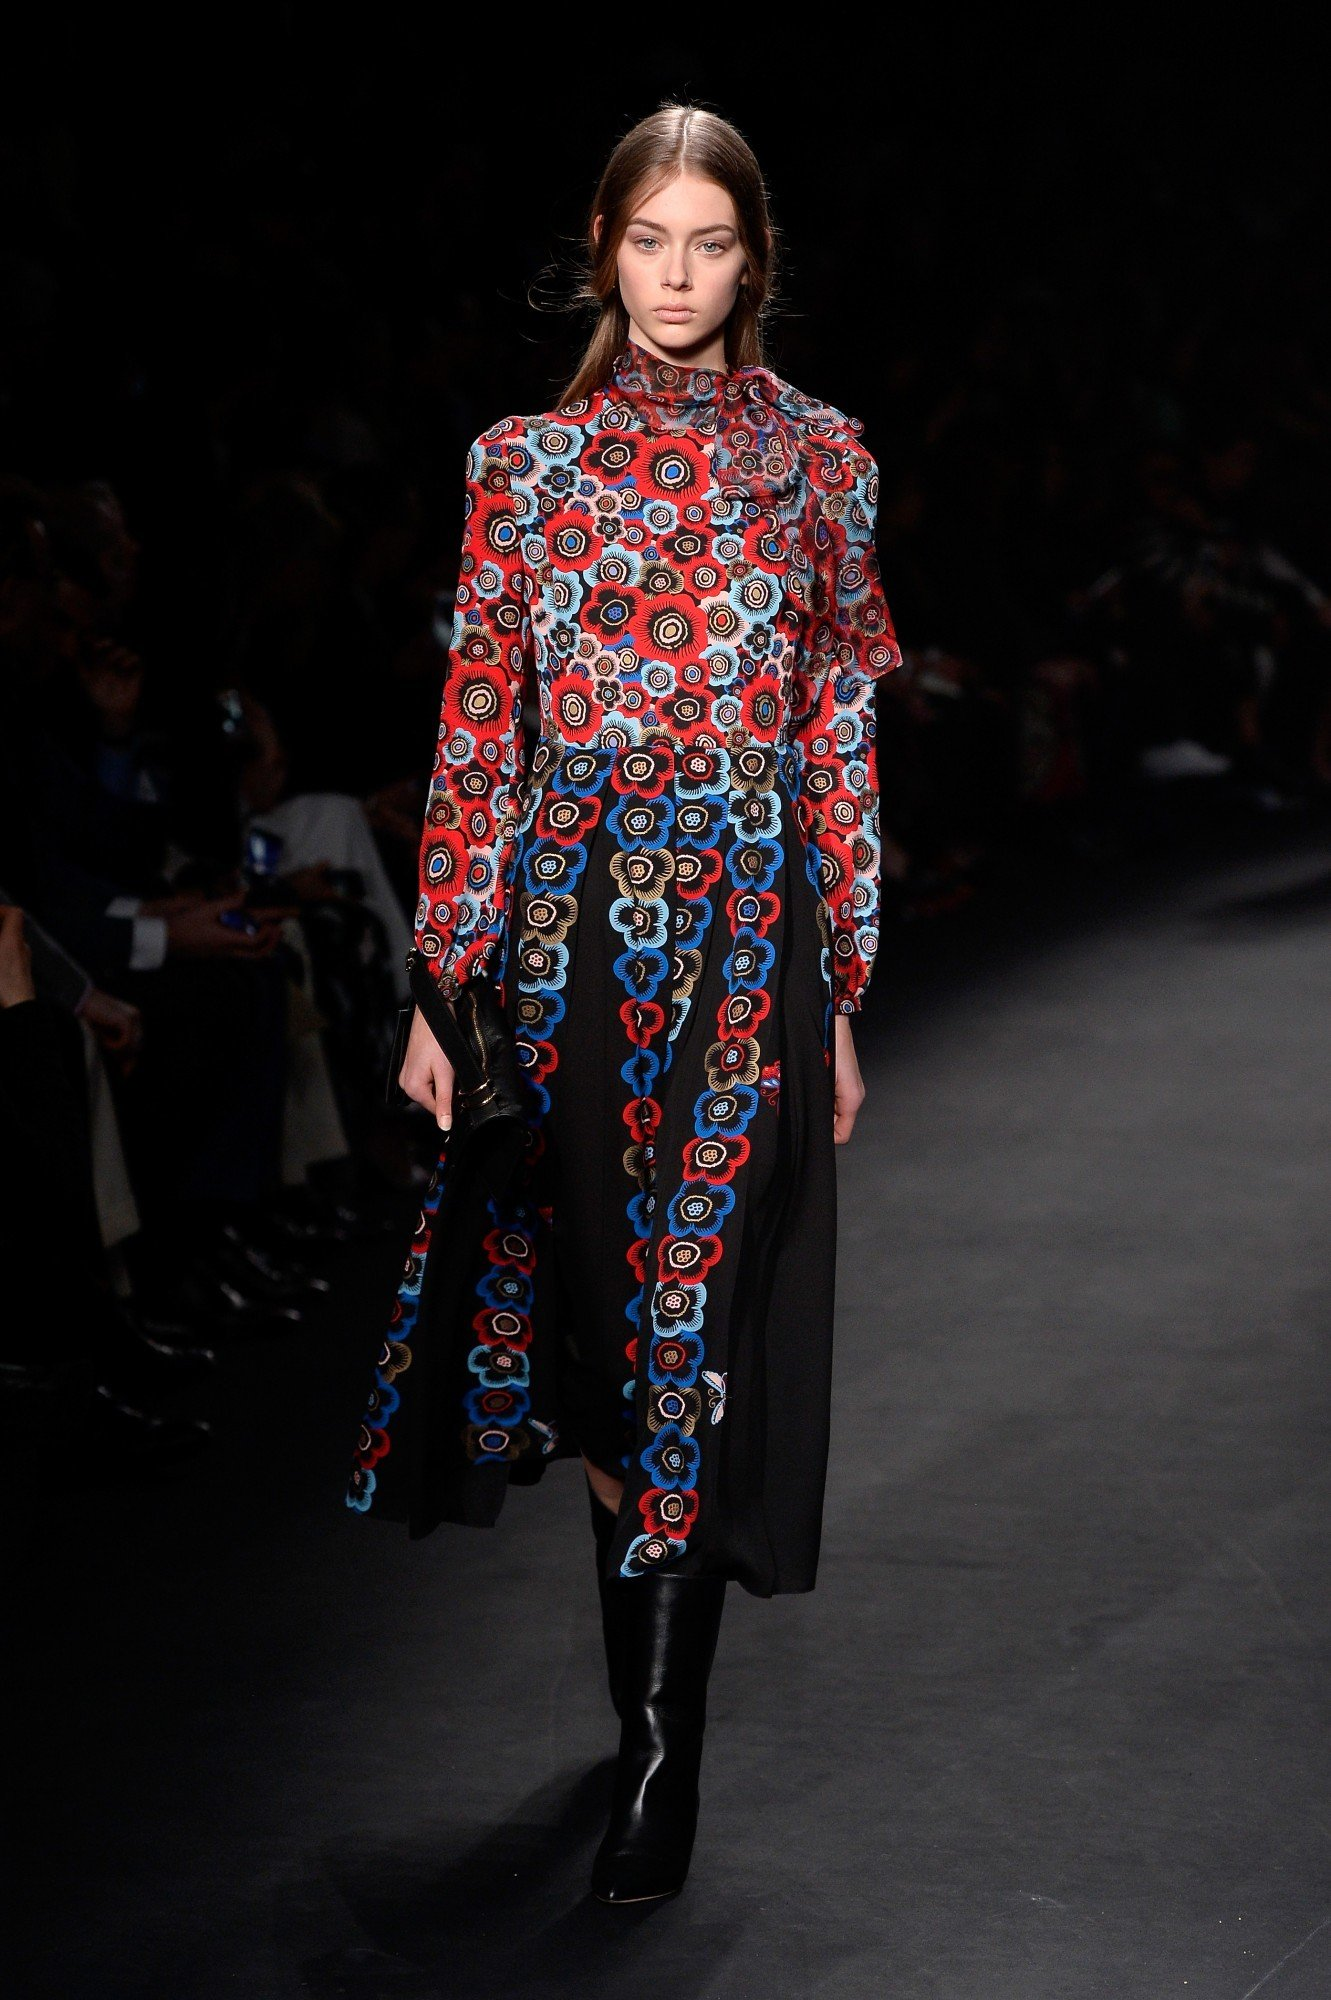 A model walks the runway during the Valentino show as part of the Paris Fashion Week Womenswear Fall/Winter 2015/2016 on March 10, 2015 in Paris, France.